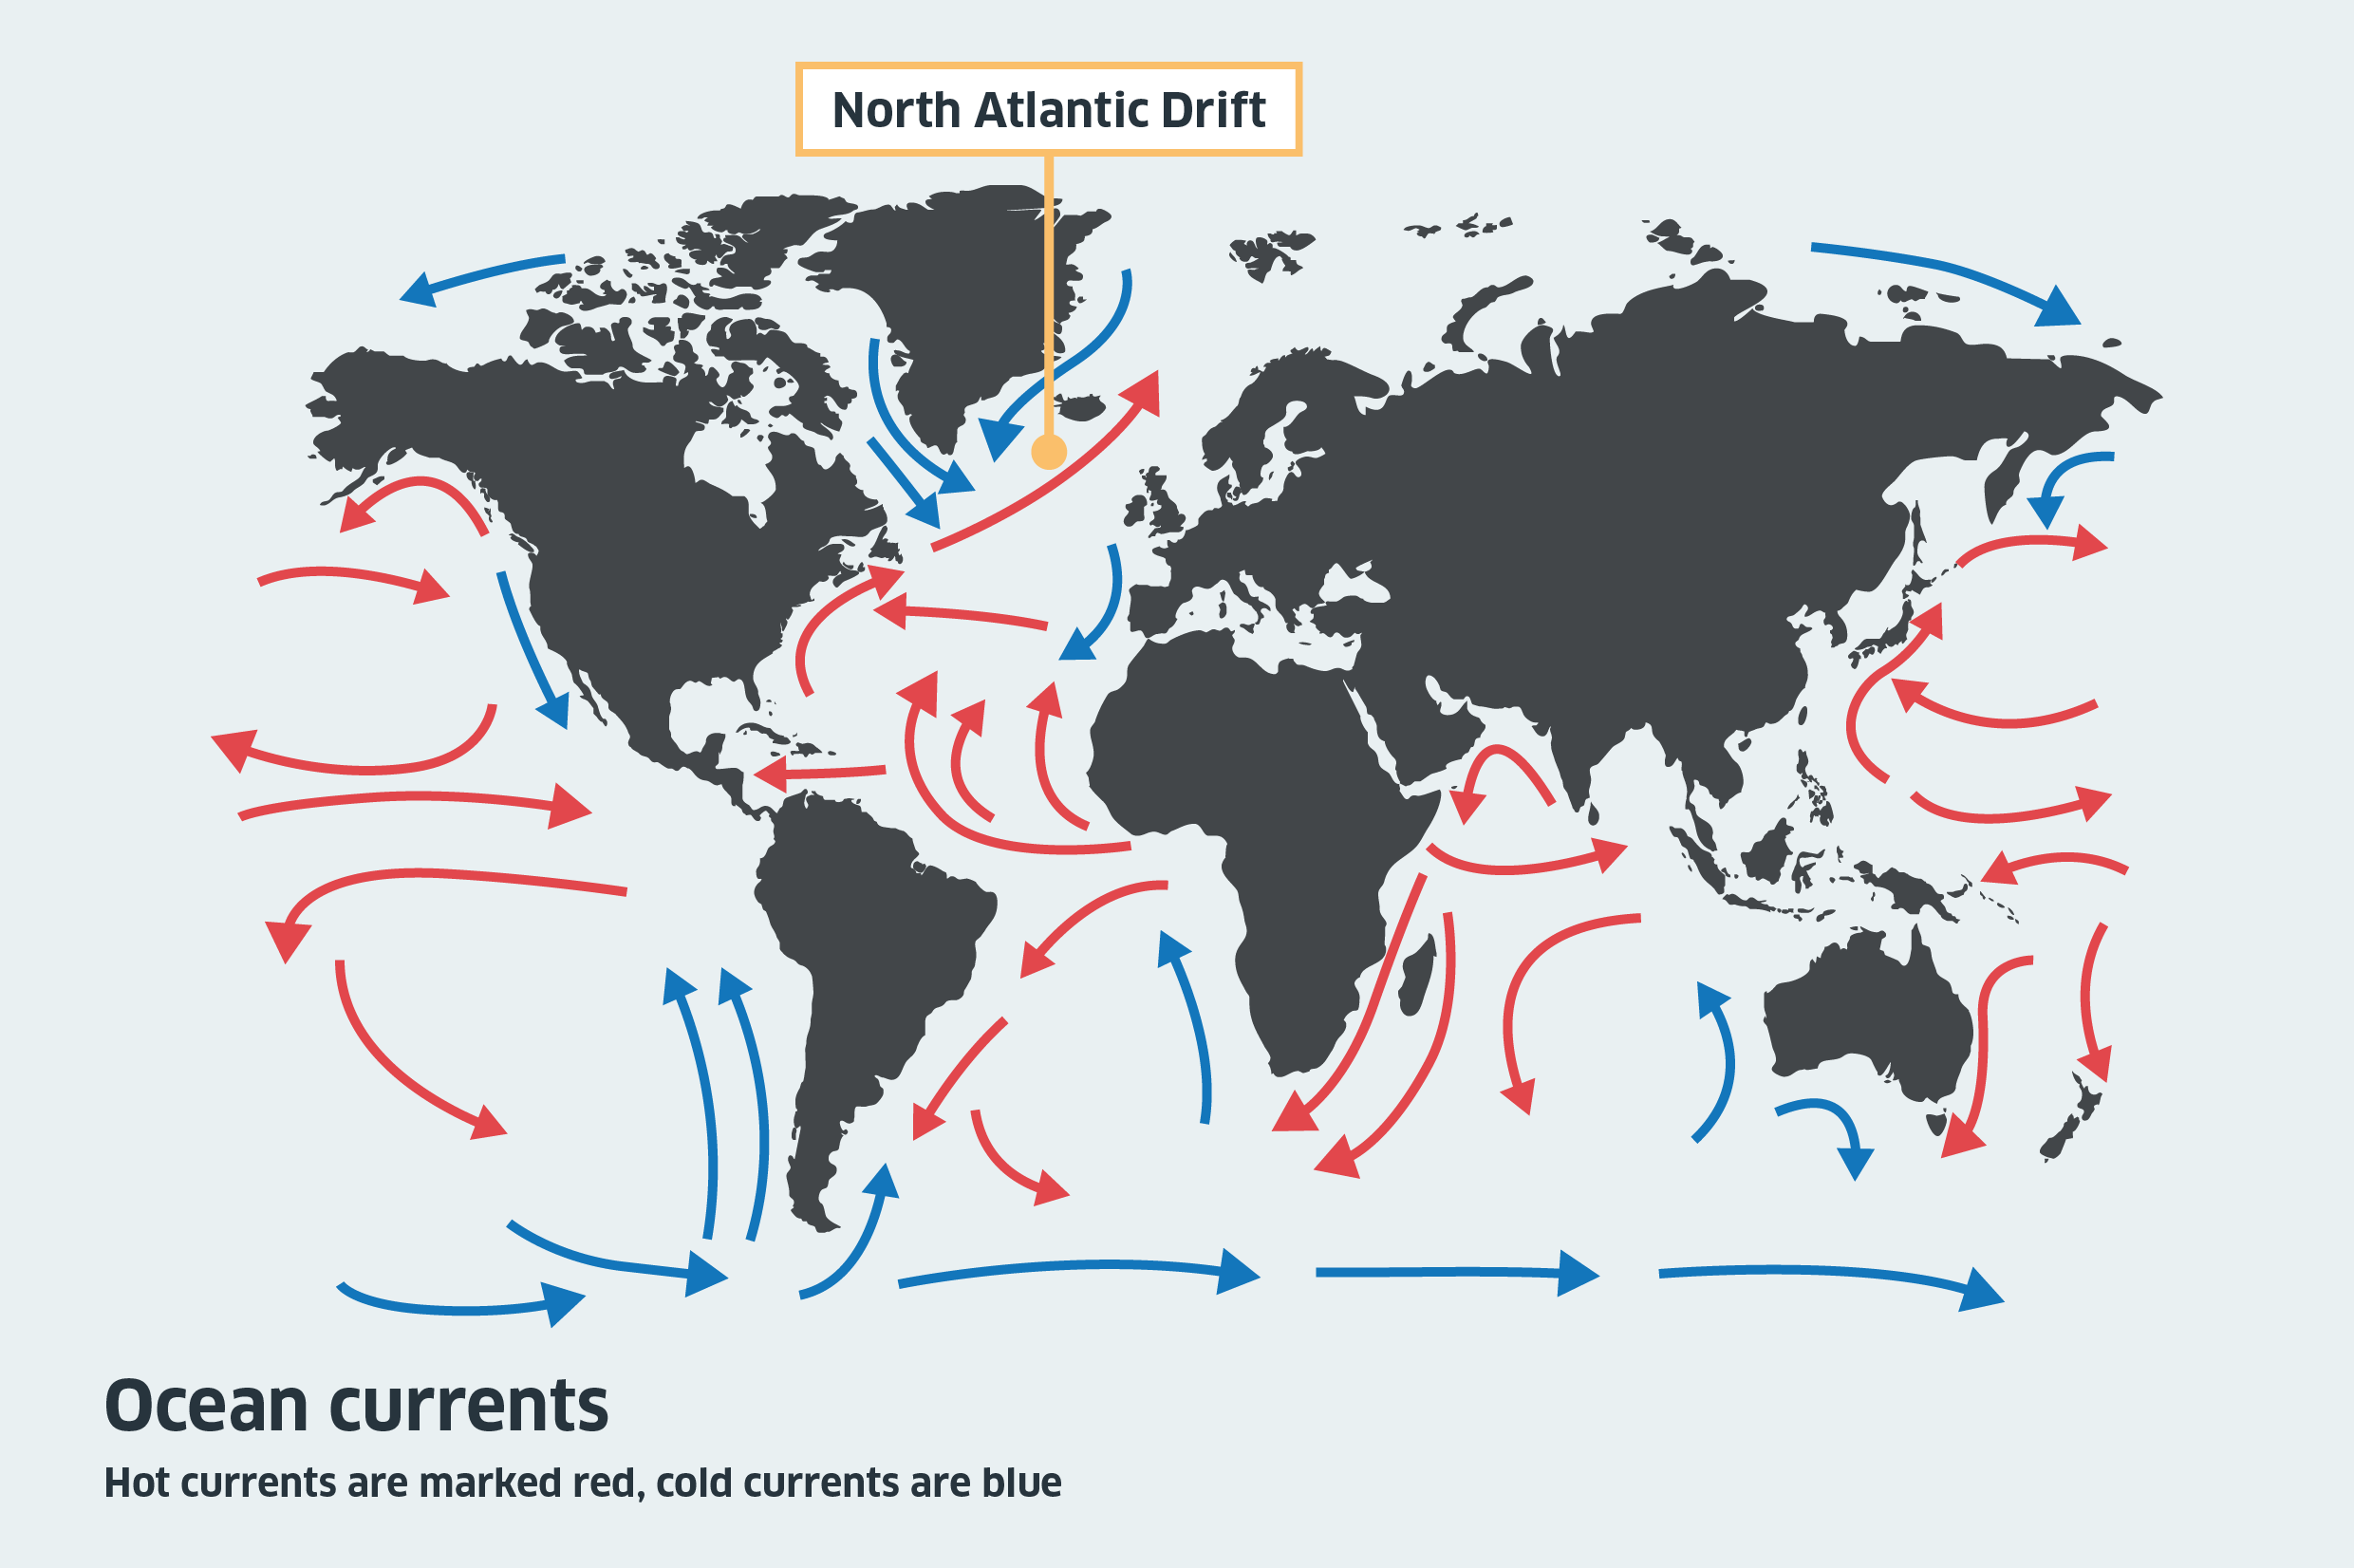 A graphic map of ocean currents